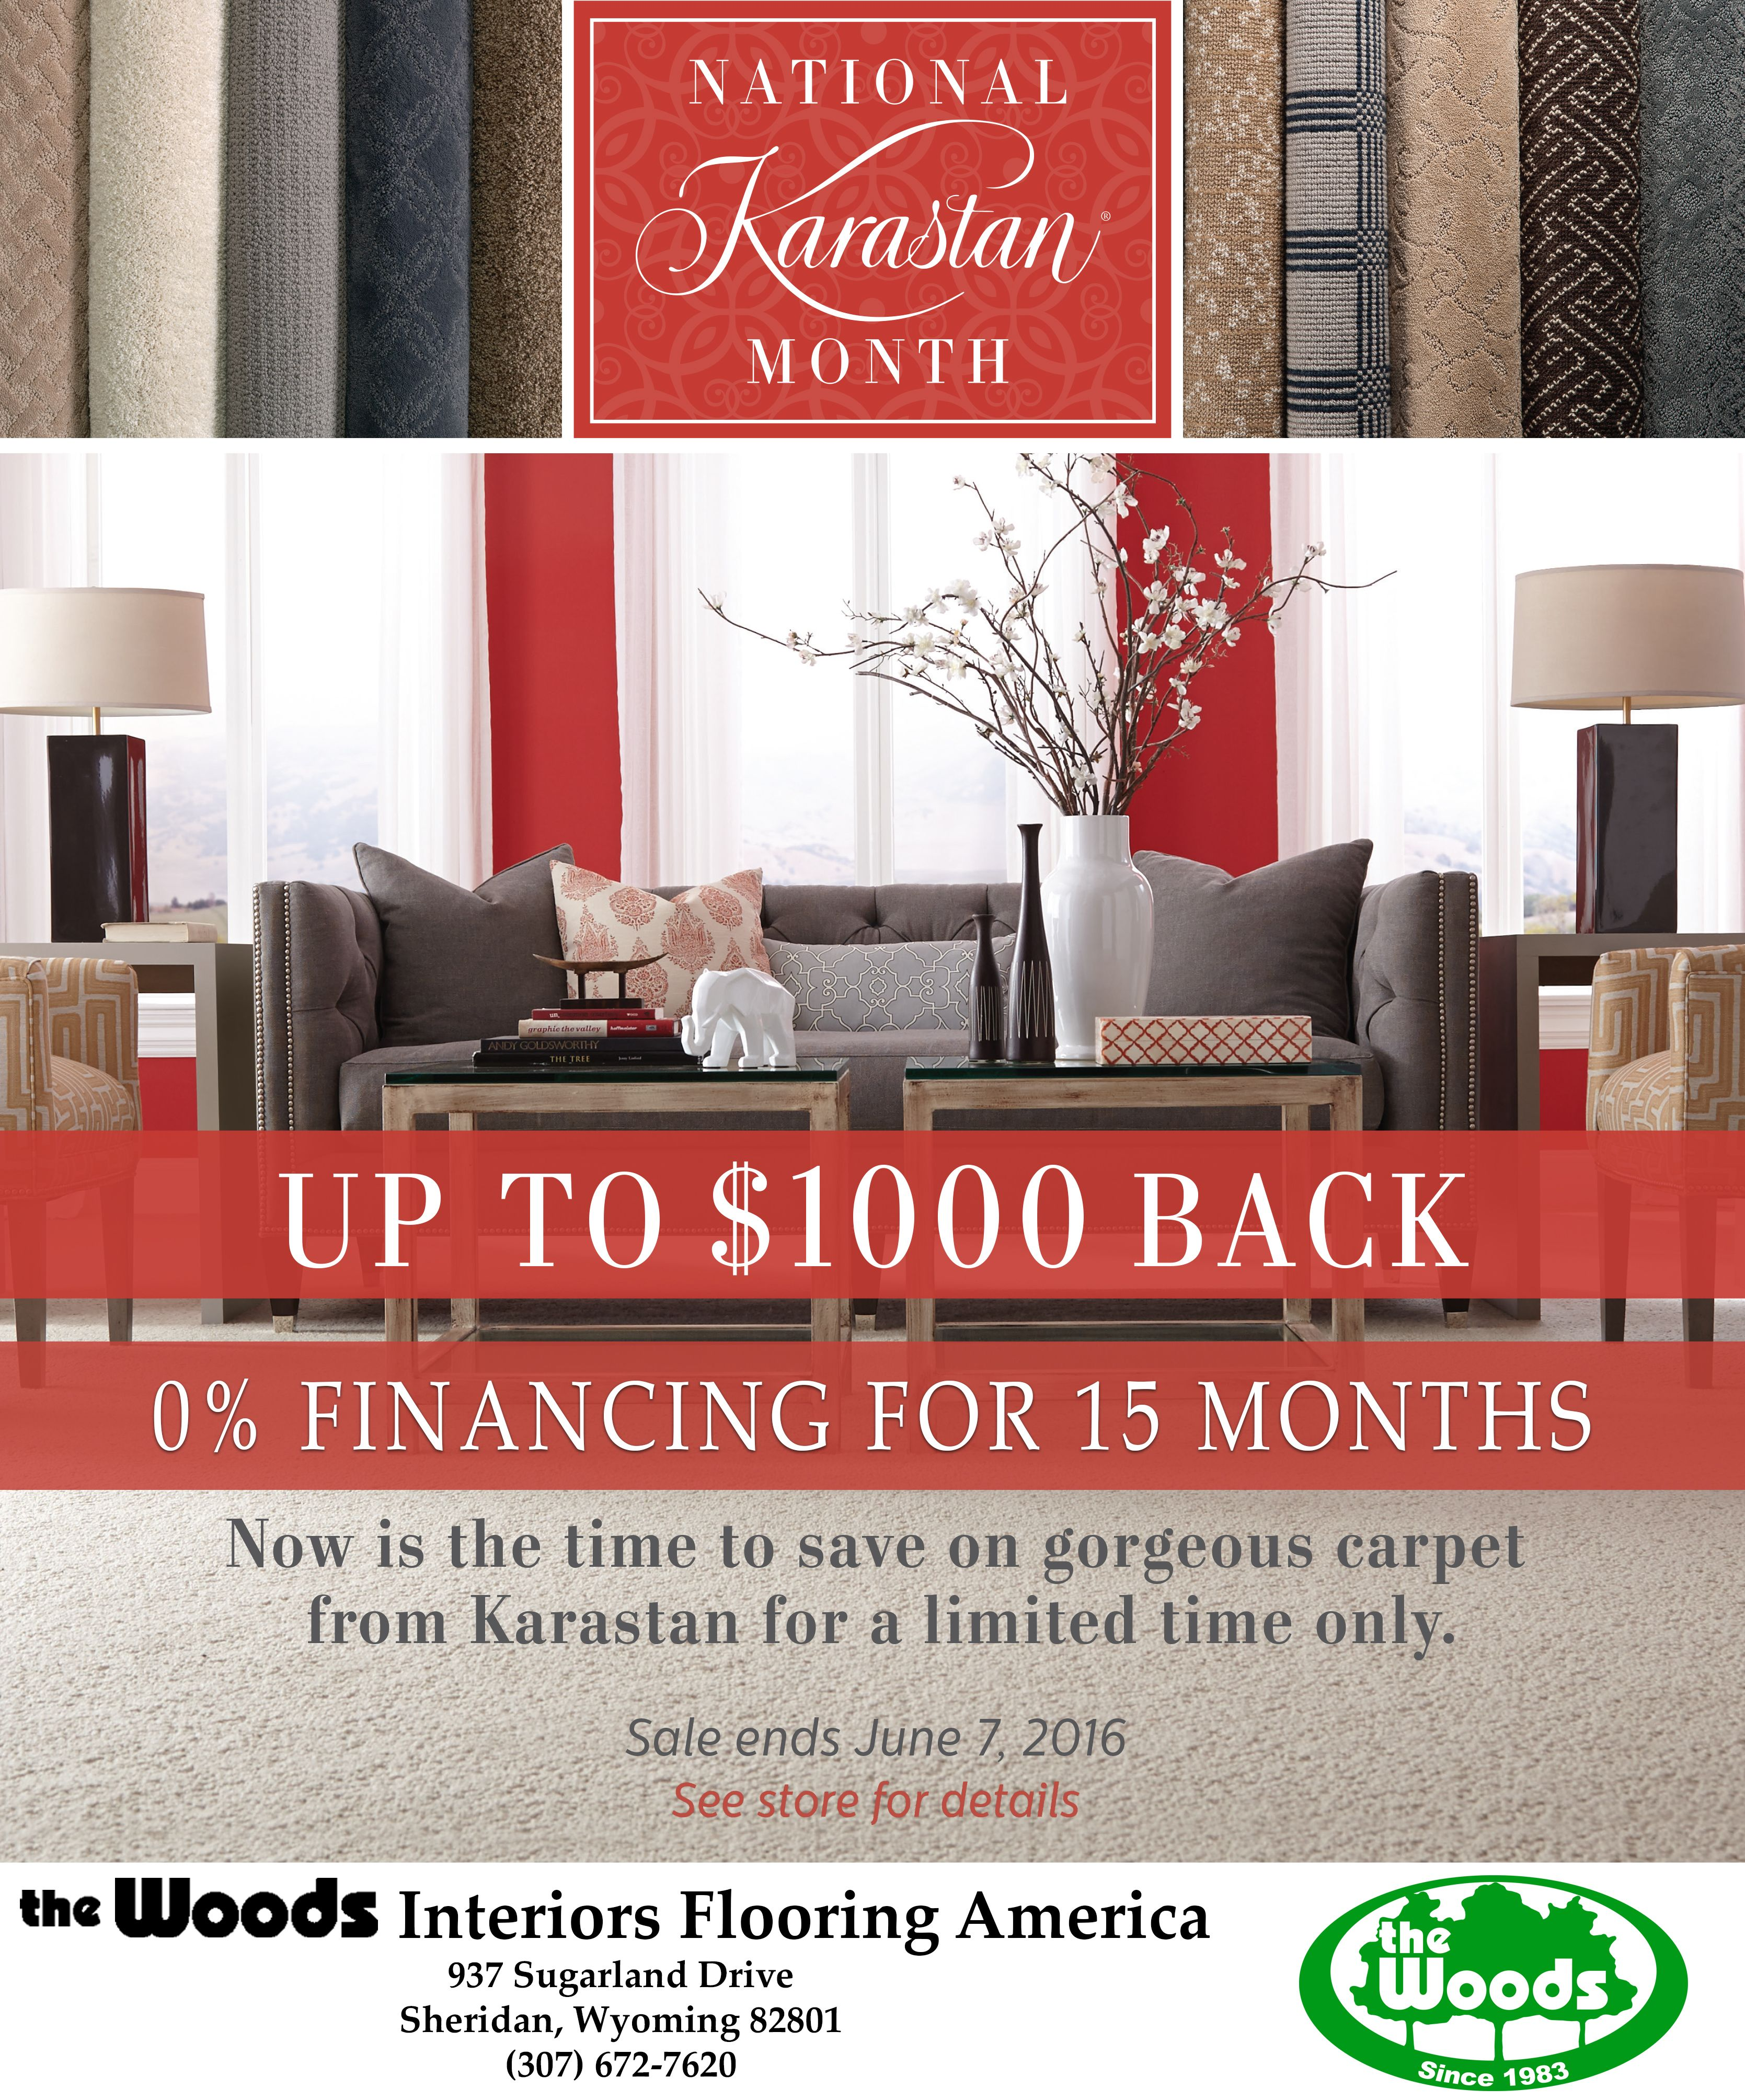 Come Into The Woods Interiors At 937 Sugarland Drive And Take Advantage Of National Karastan Month Enjoy 0 Financing F Wood Interiors Interior Floor Interior